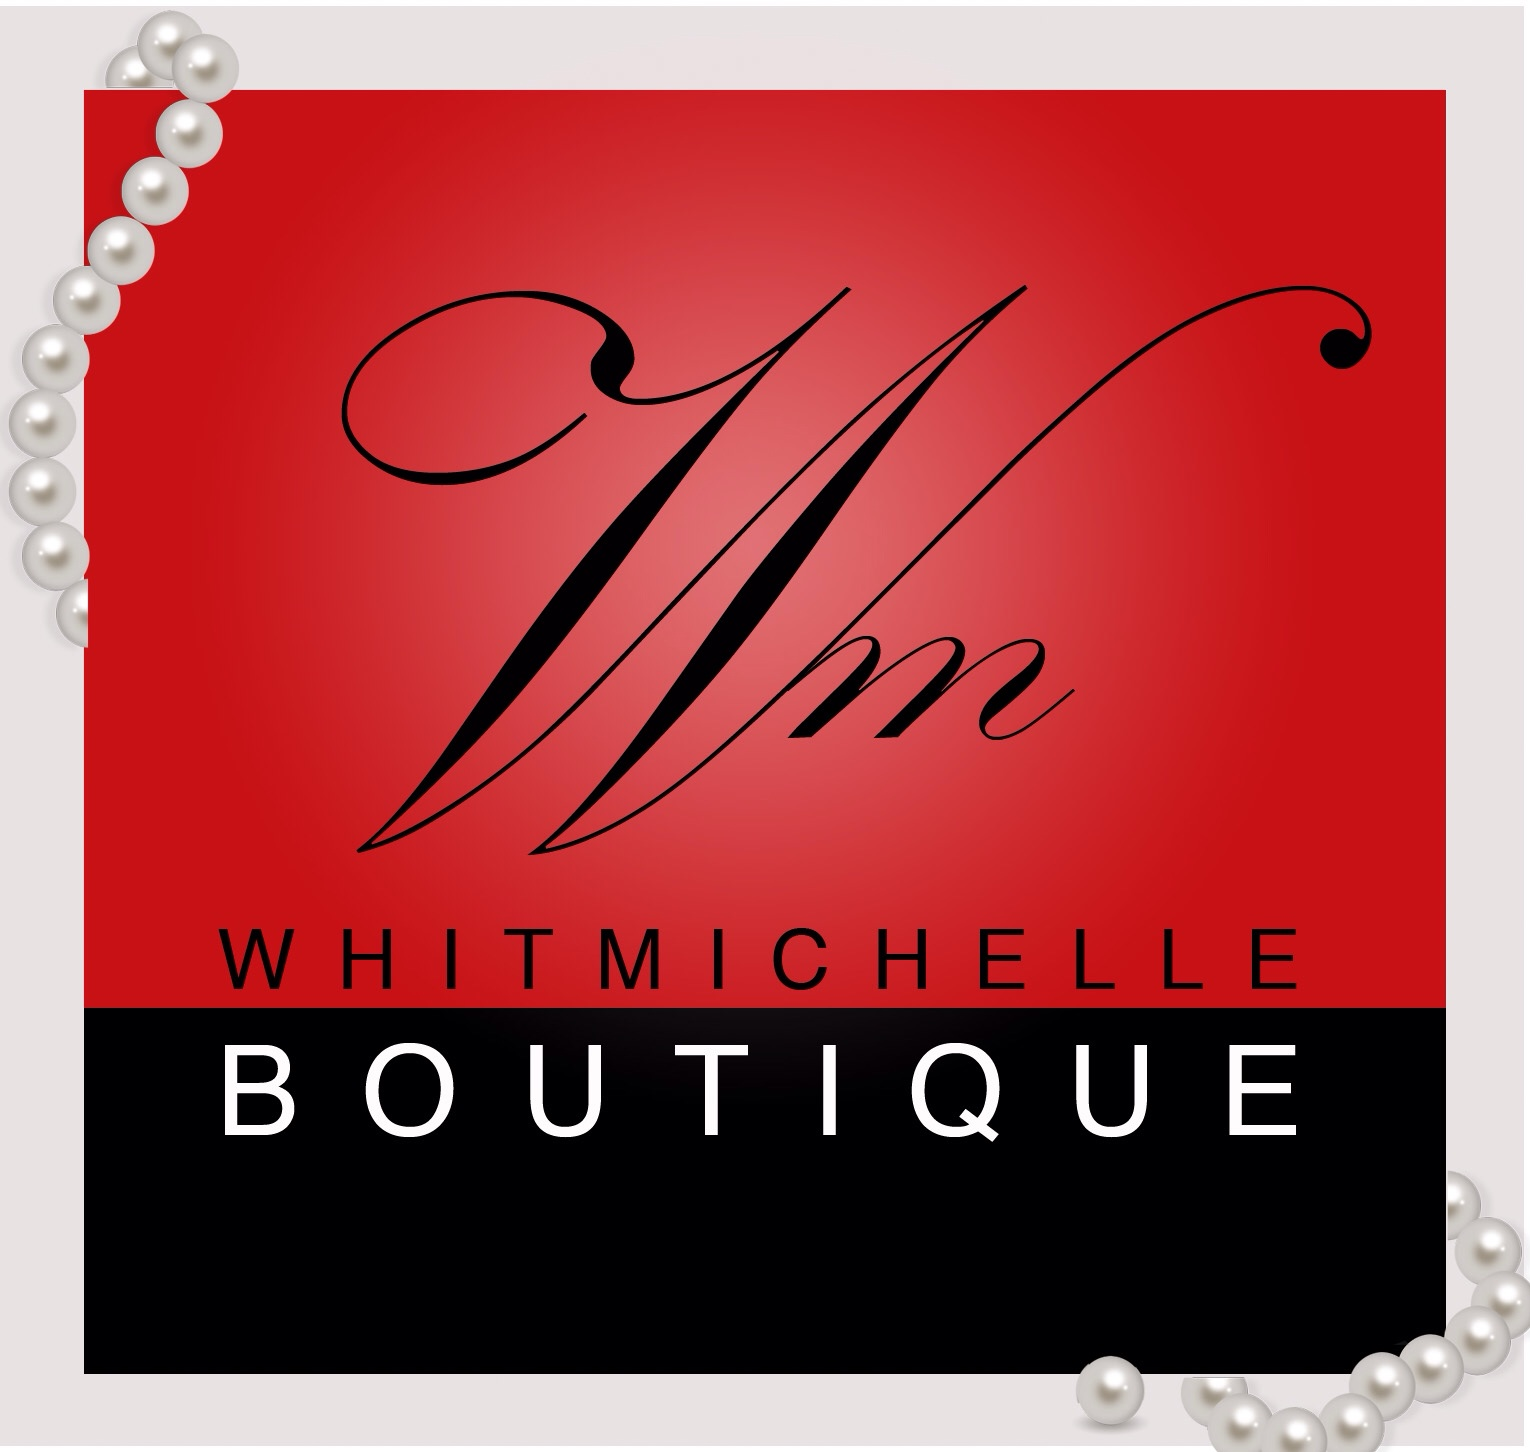 Shop WhitMichelle Boutique